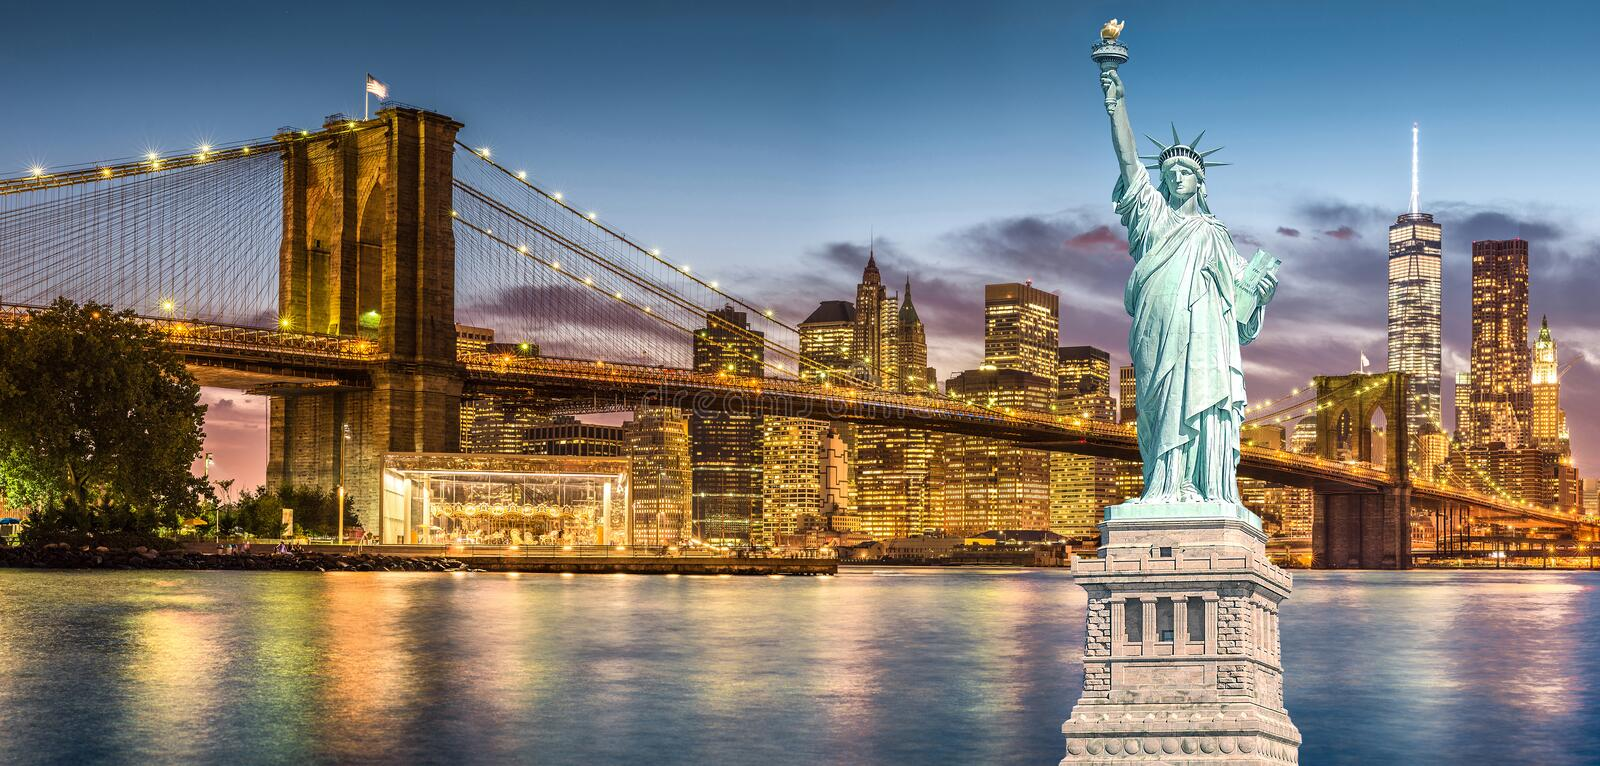 The Statue of Liberty and Brooklyn Bridge with World Trade Center background twilight sunset view, Landmarks of New York City royalty free stock images